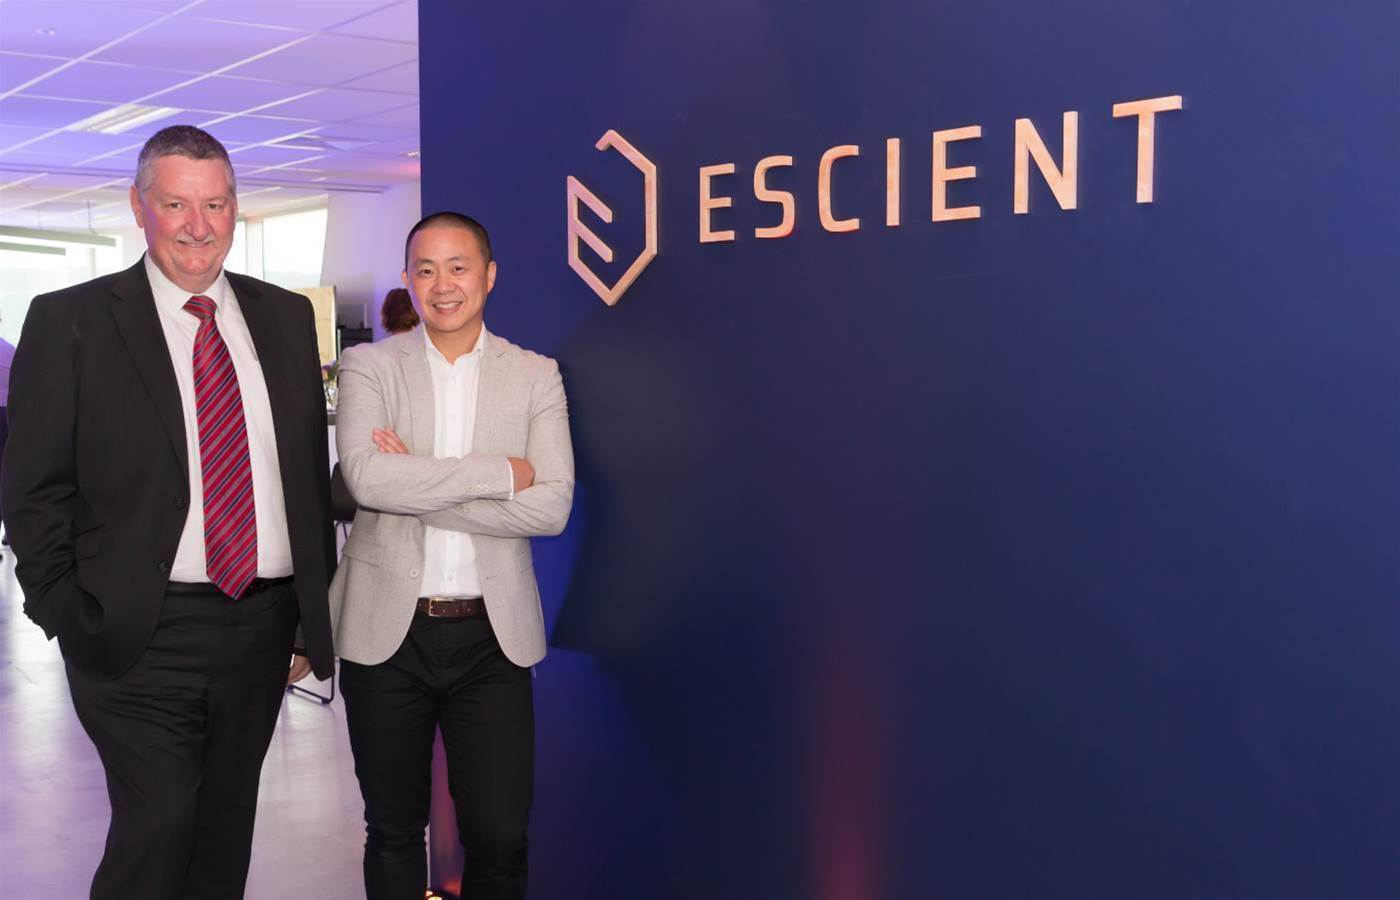 Clients join Escient in new branding reveal